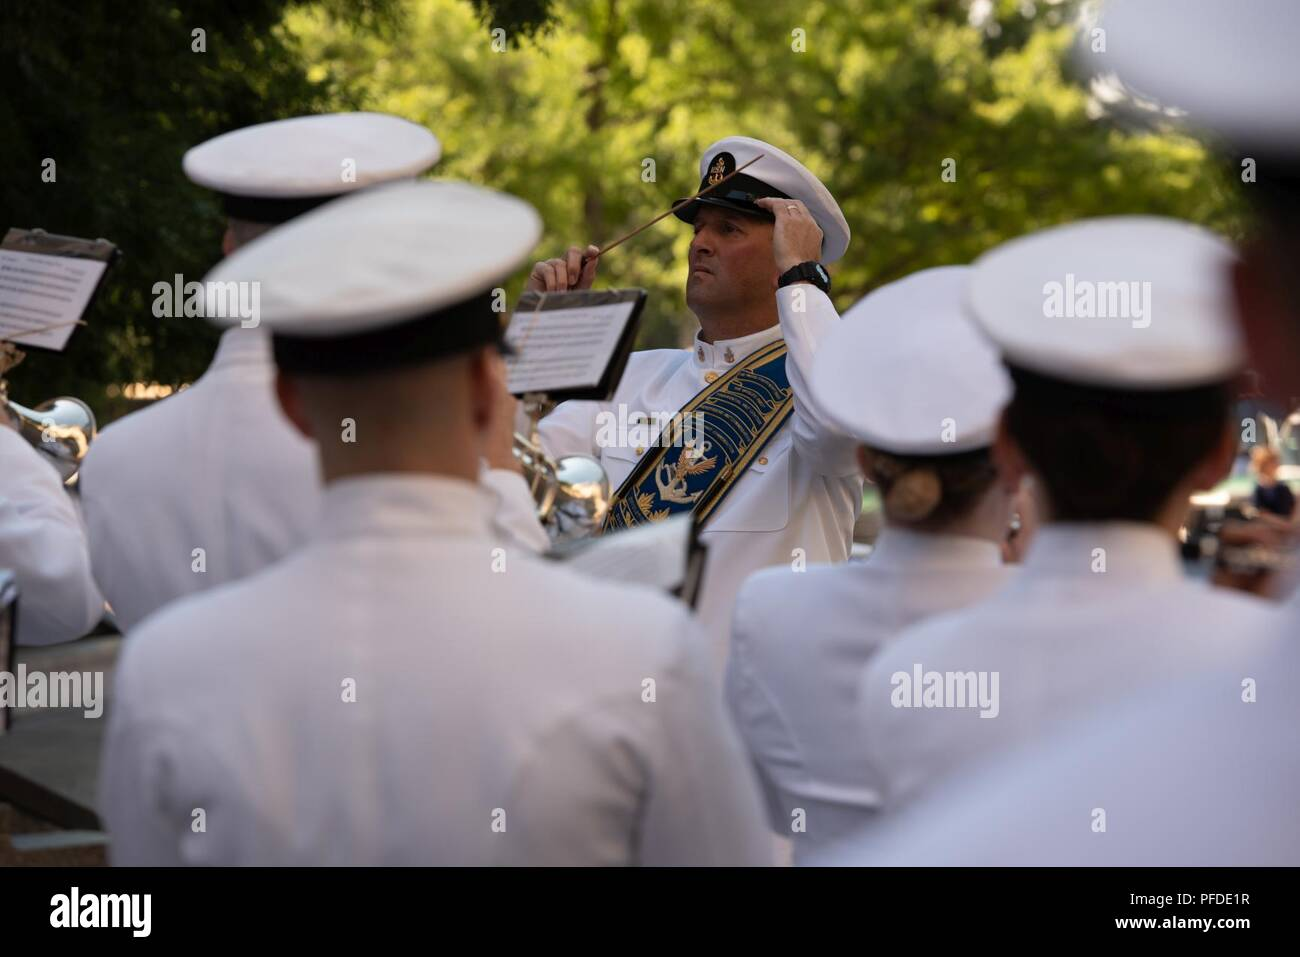 WASHINGTON (June 5, 2018) Senior Chief Musician Michael Bayes, drum major of the U.S. Navy Ceremonial band leads the band at the U.S. Navy Memorial in Washington, D.C., during the commemoration of the 76th anniversary of the Battle of Midway. The Battle of Midway began on June 4 in 1942 and stands as one of the U.S. Navy's most historically significant naval battles. Fought on the high seas of the Pacific more than half a century ago, this battle altered the course of the war in the Pacific and thereby shaped the outcome of world events. - Stock Image